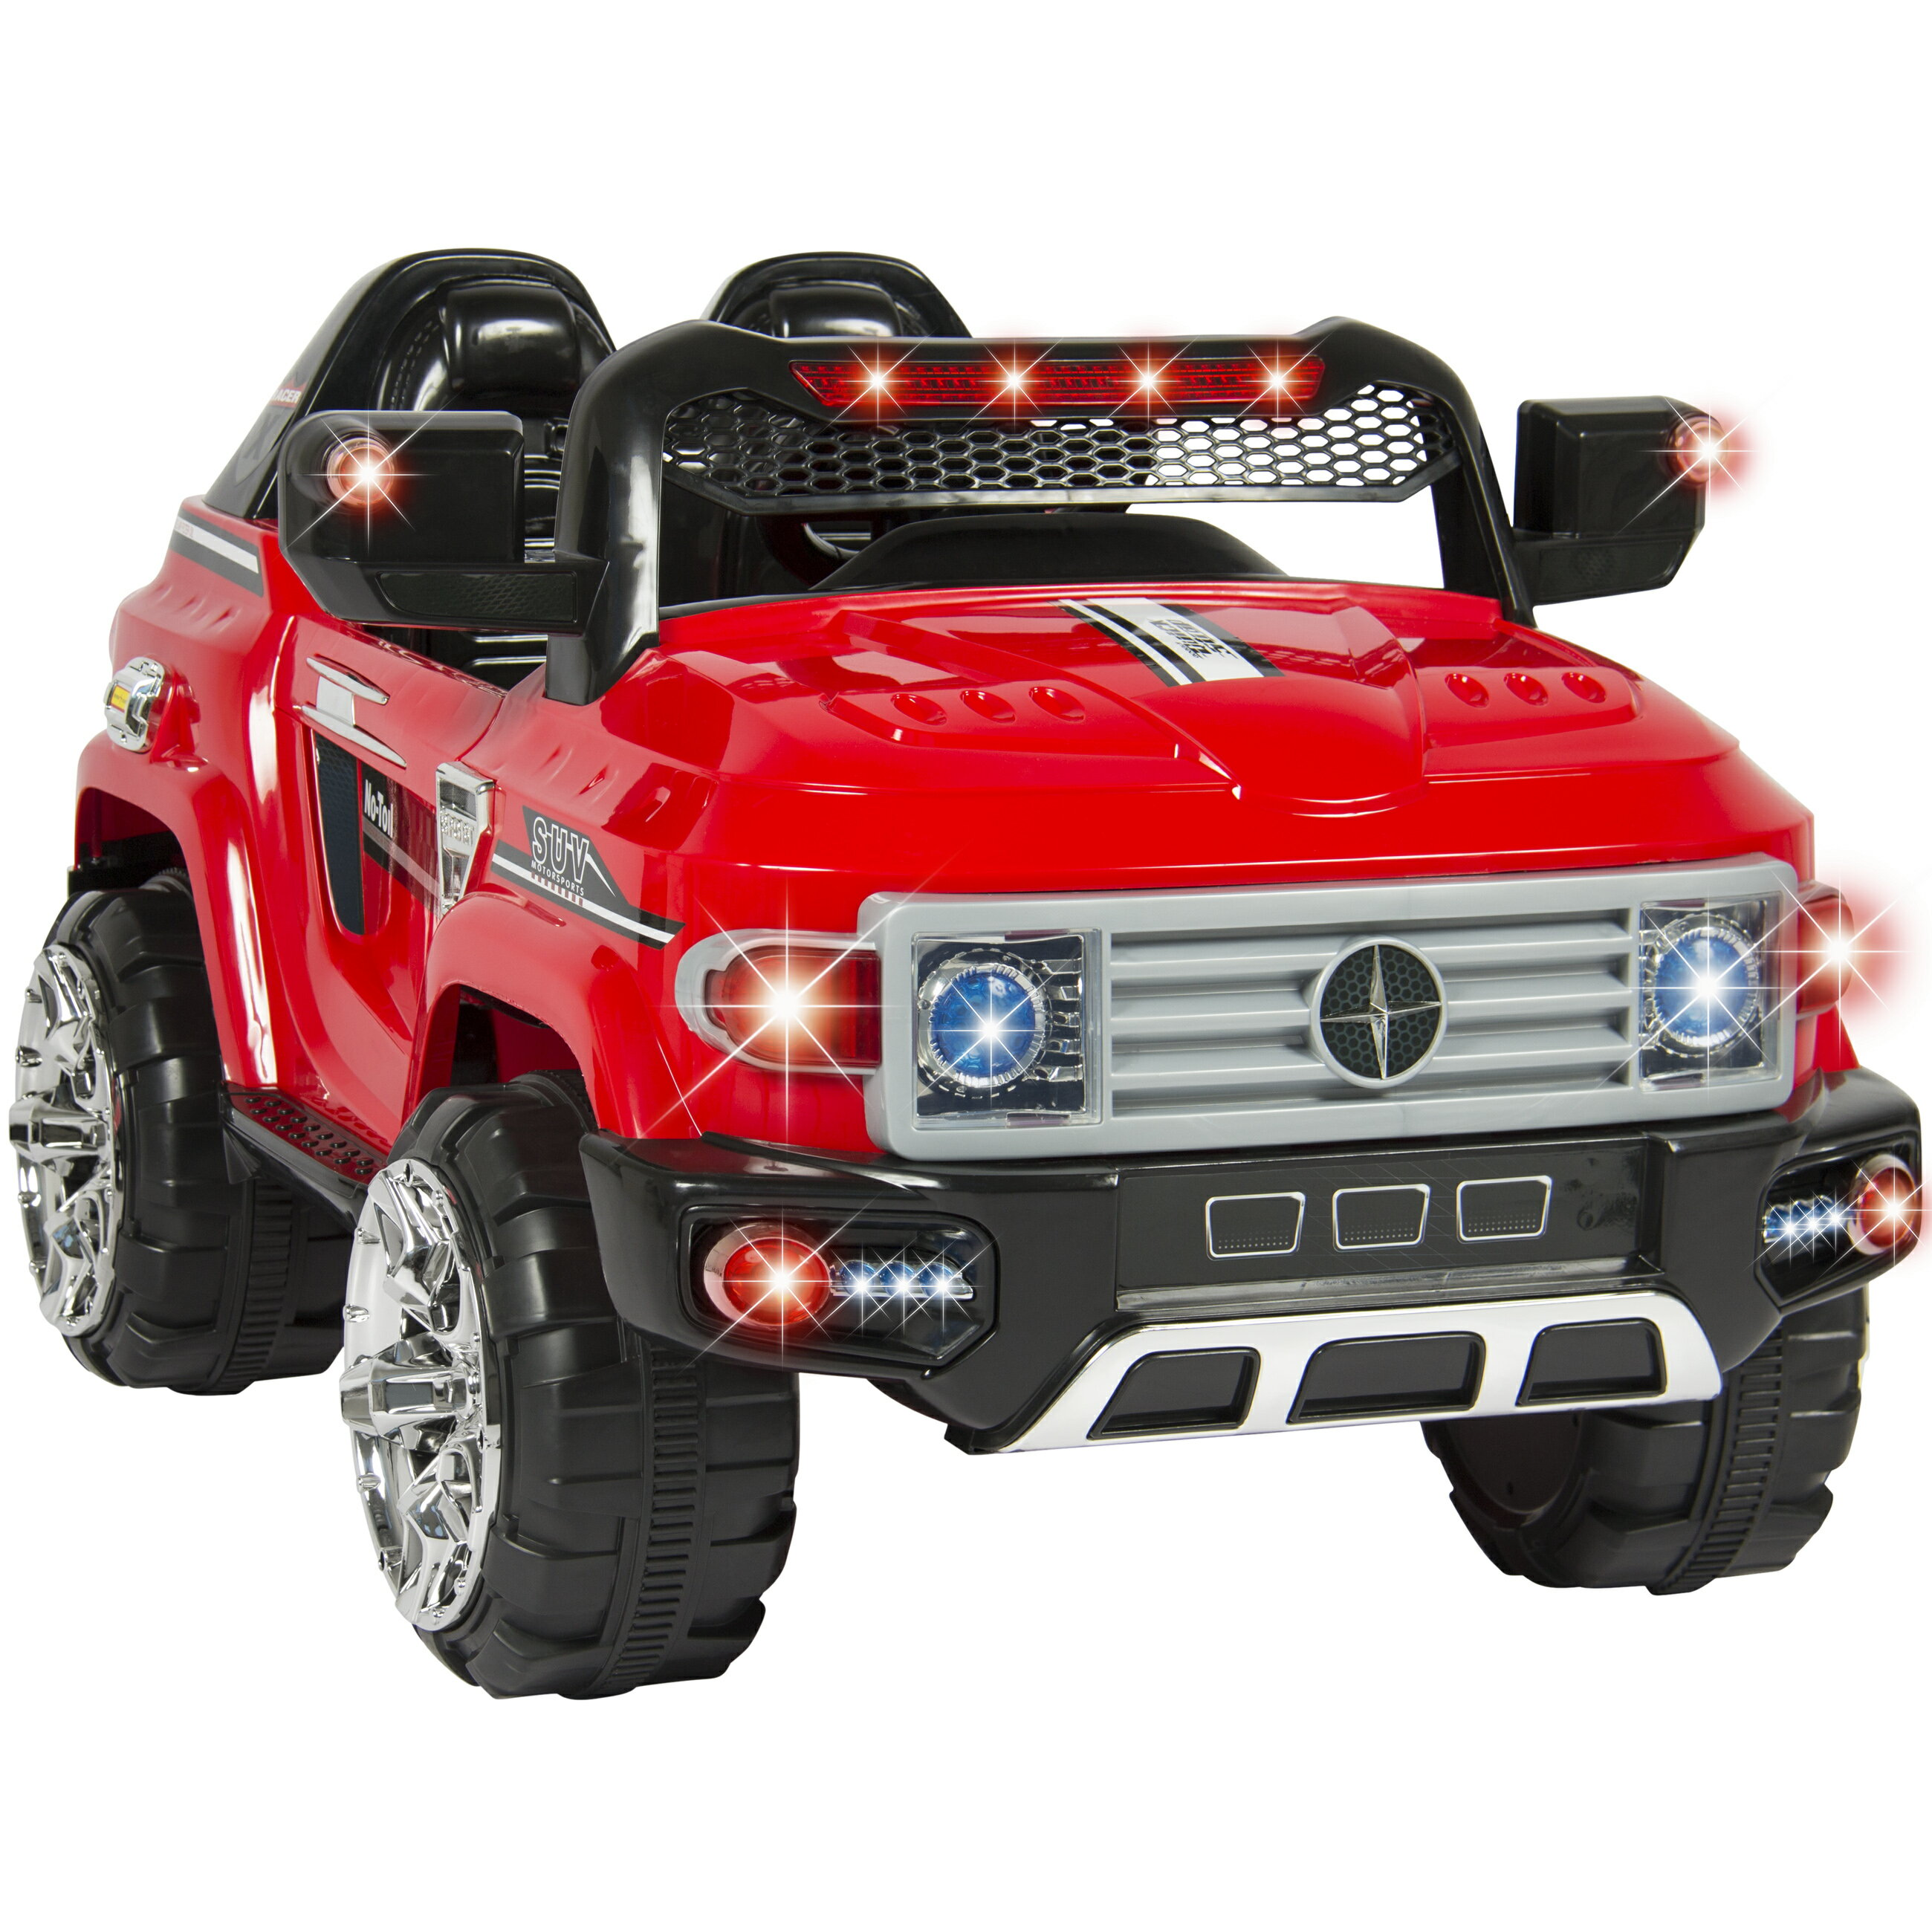 BestChoiceProducts: Best Choice Products 12V Kids Ride-On Truck Car